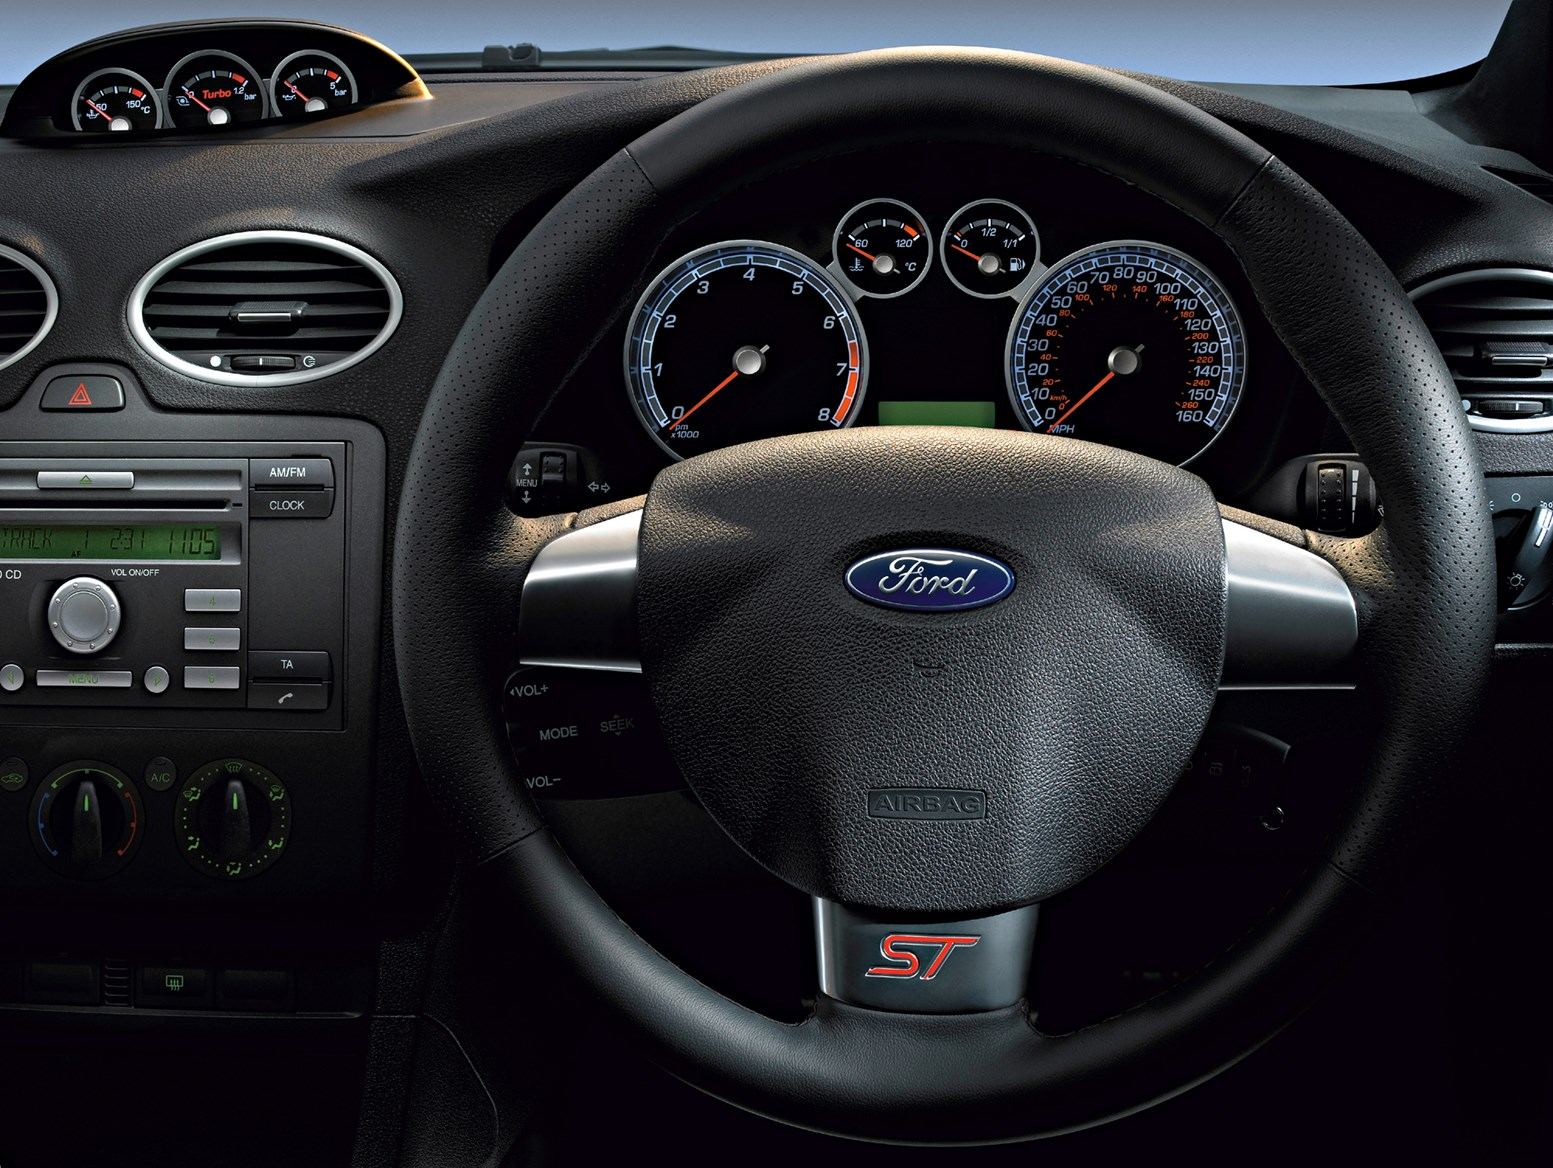 Ford Focus St Interior Mods Gallery Of Of The Easiest Cheapest Most Effective Focus St Mods